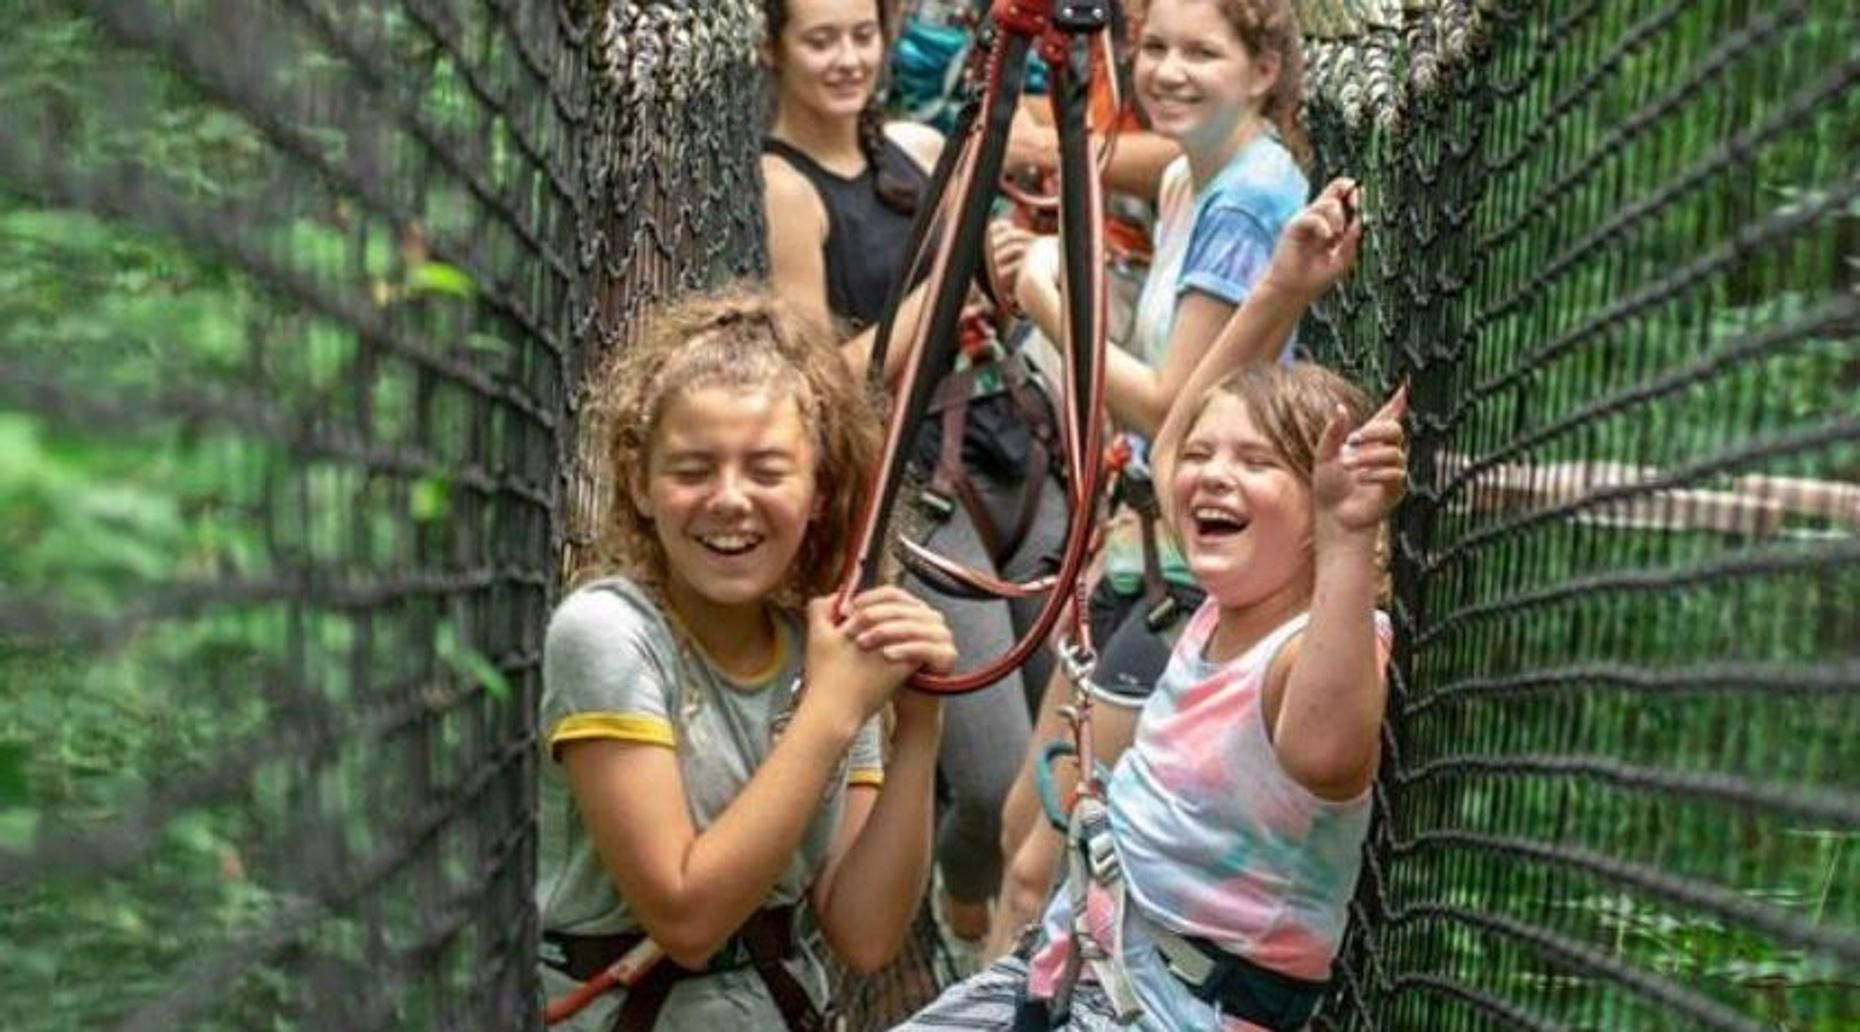 Aerial Adventure Course for Kids in Riegelwood